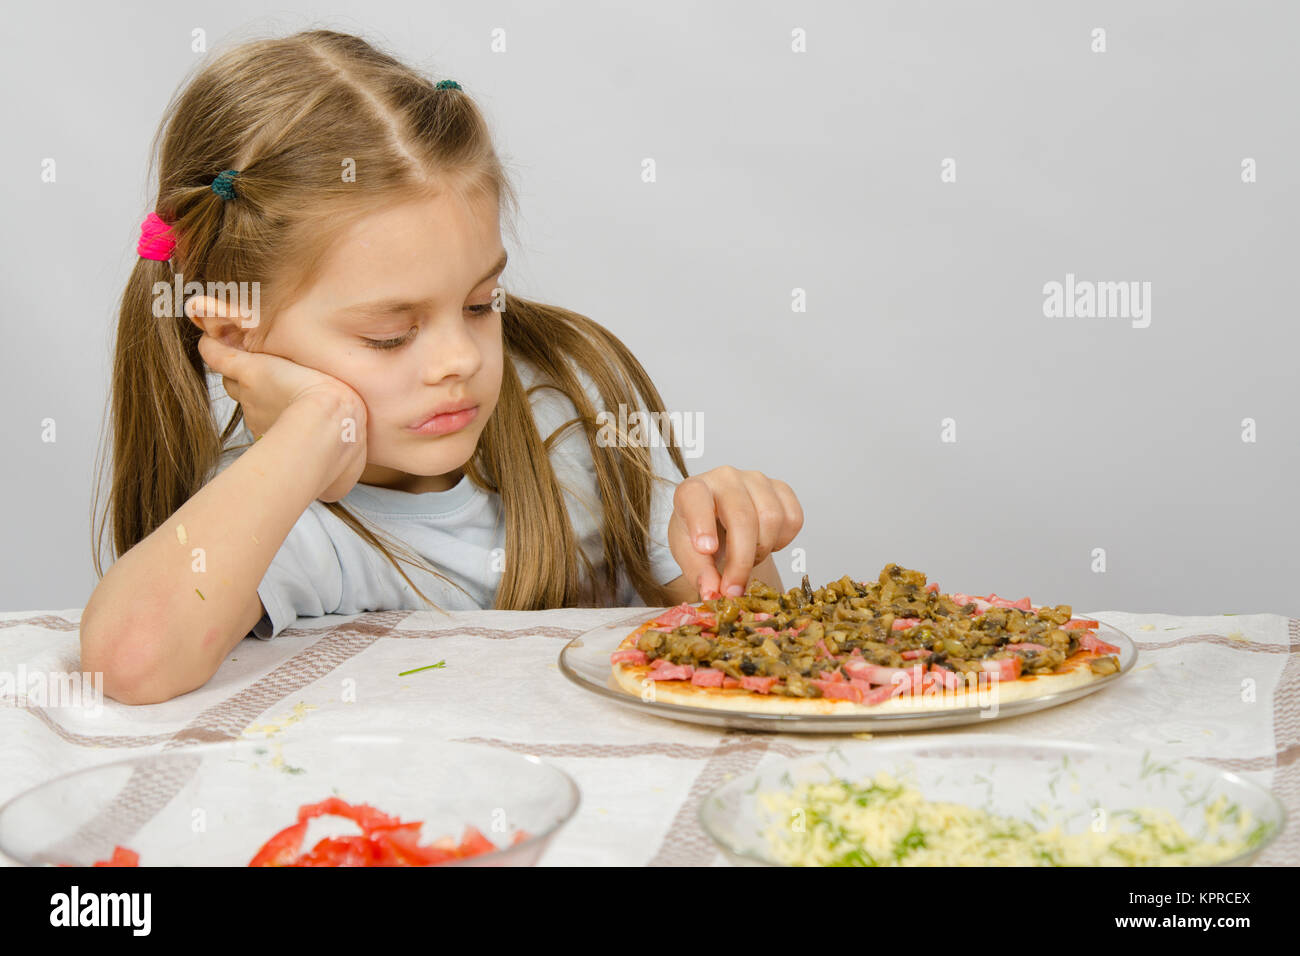 Table For 6 Year Old: Kids Desire Small Stock Photos & Kids Desire Small Stock